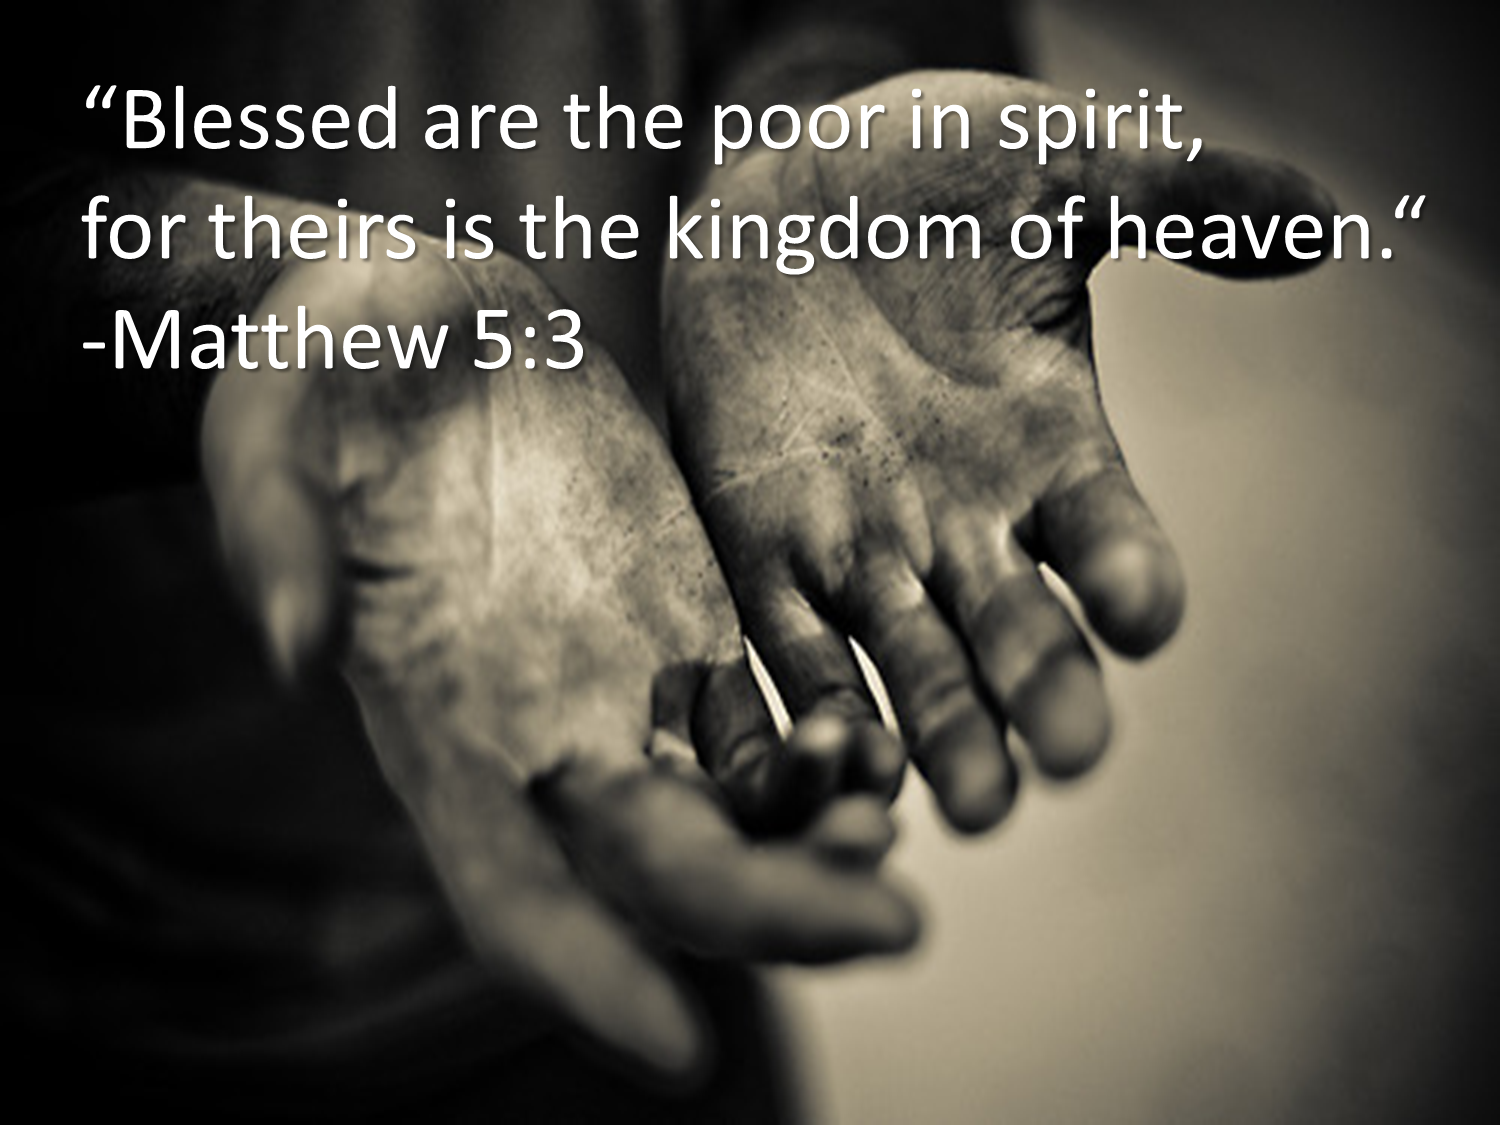 university of santo tomas blessed are the poor in spirit mt   5 3 presents a greater lesson a true revelation to the human mind and heart blessed are the poor in spirit for theirs is the kingdom of heaven